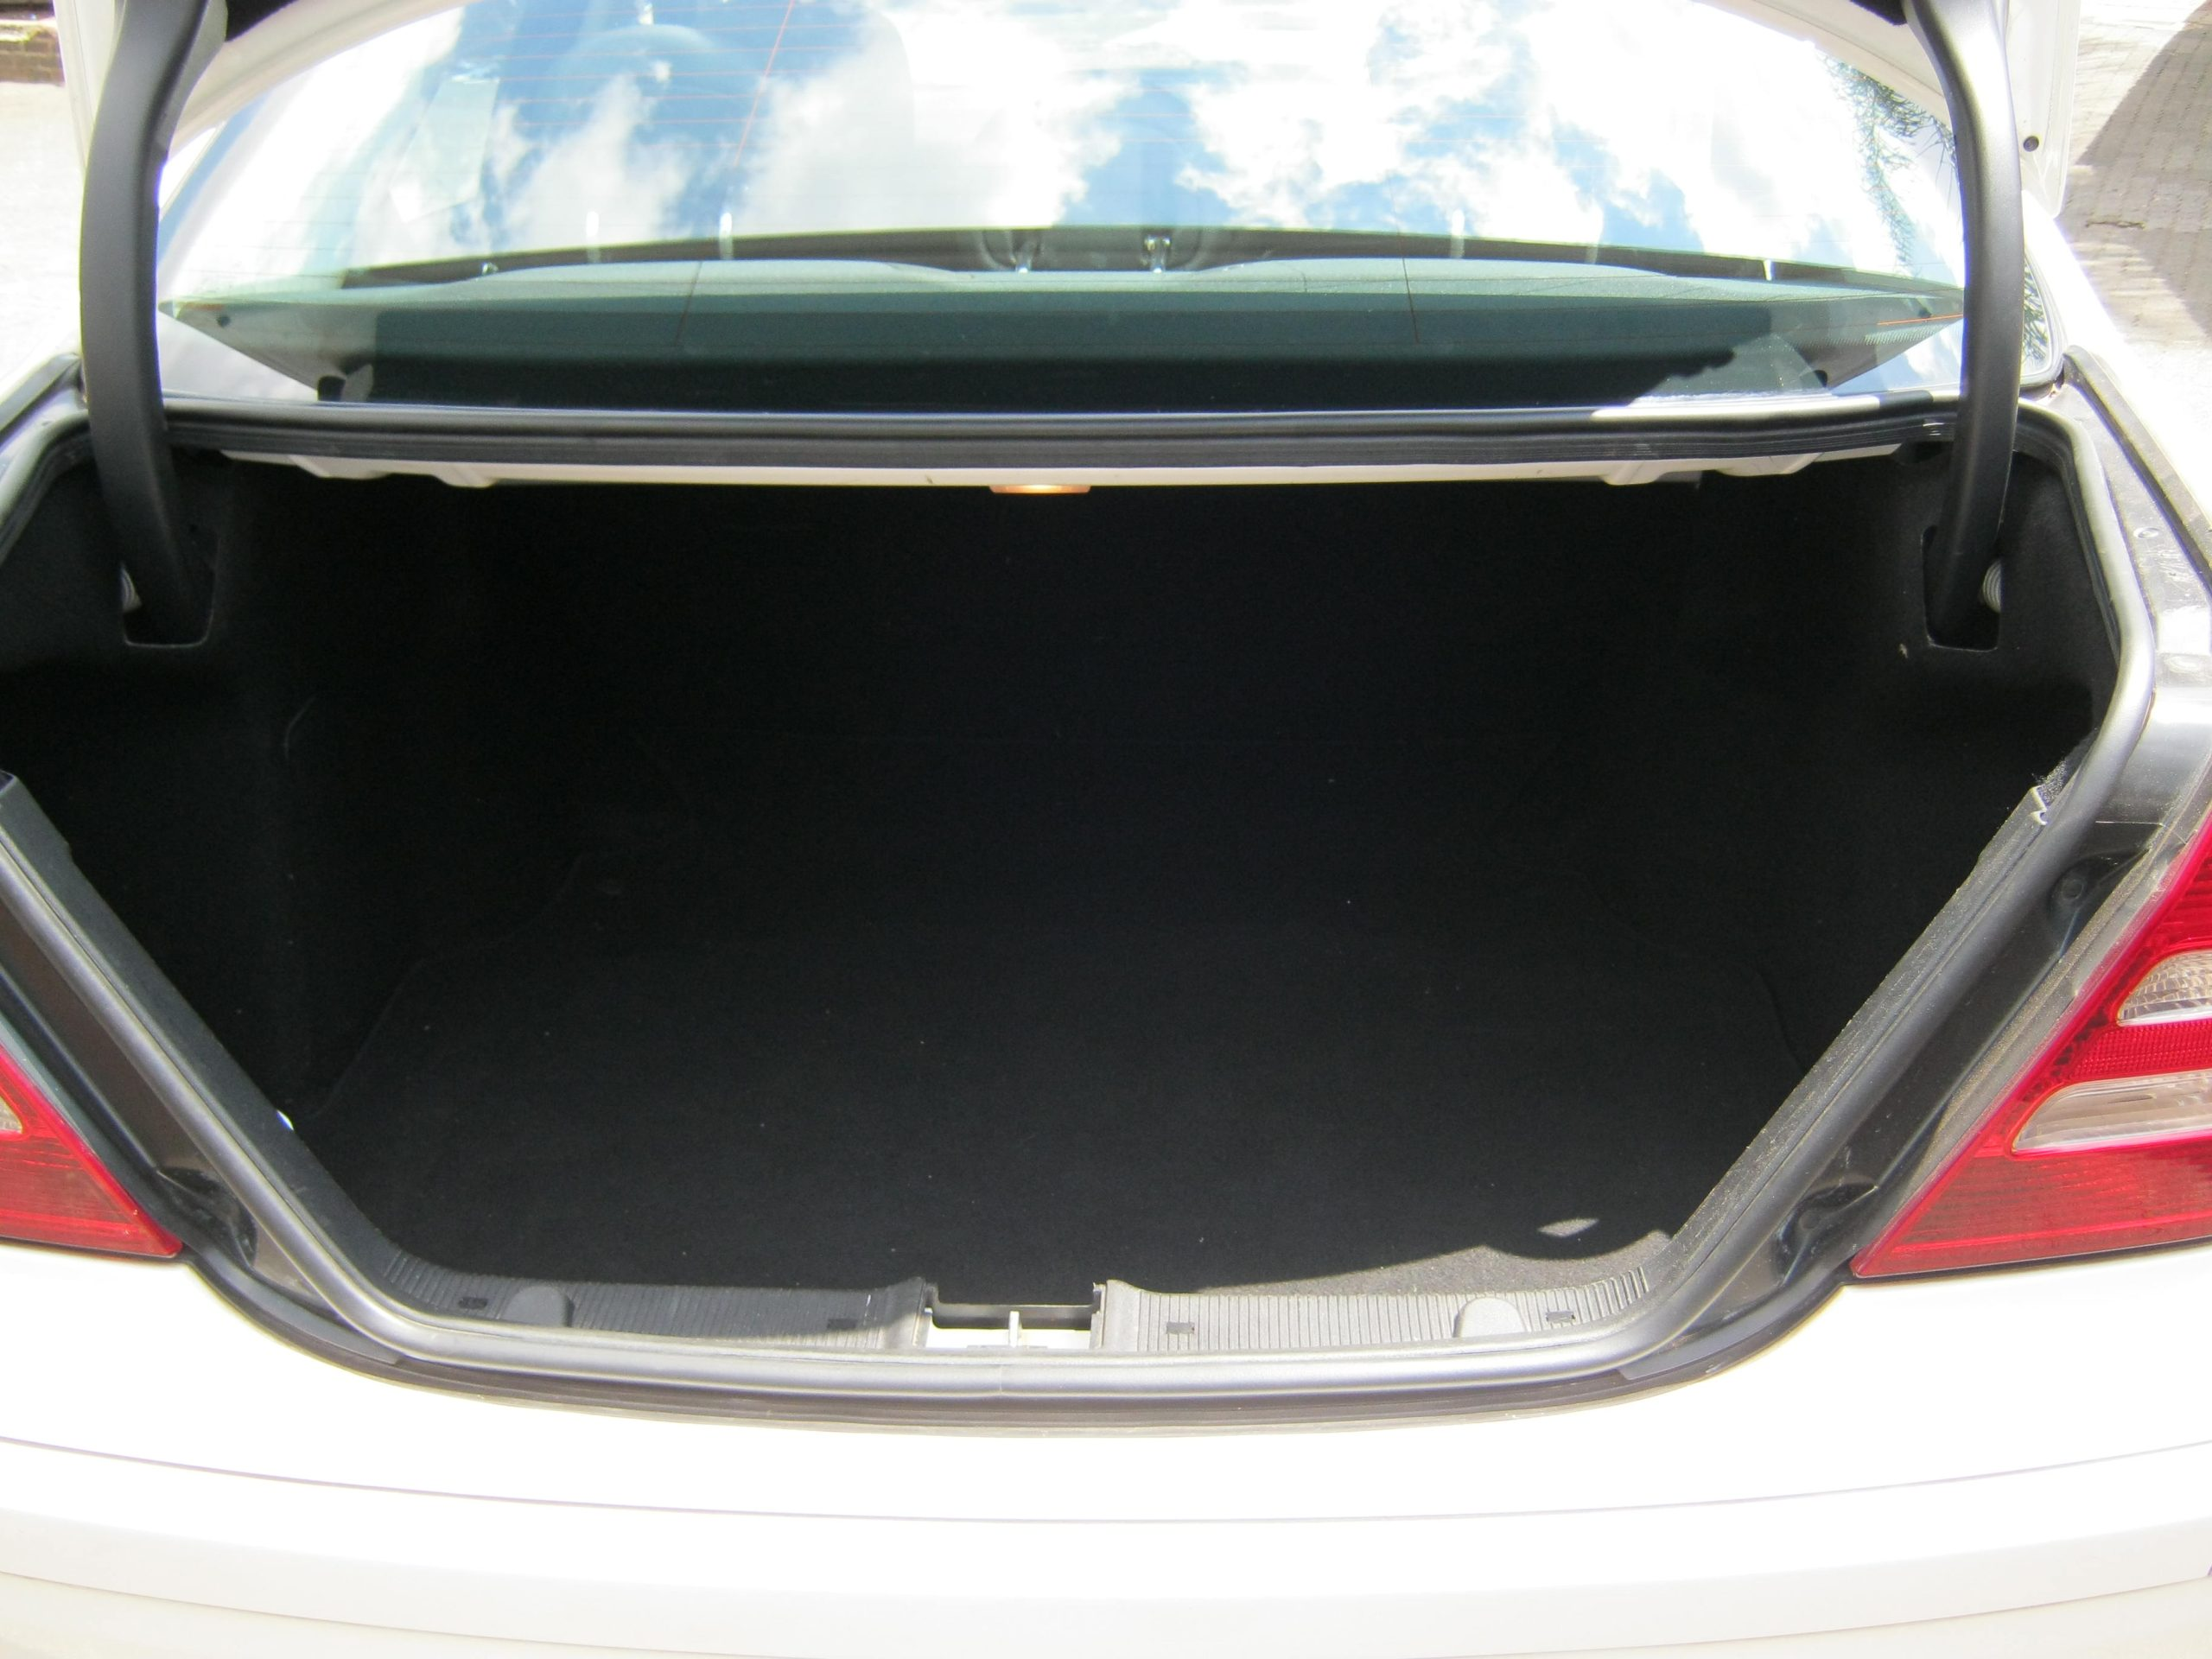 Mercedes Benz C180K Luggage Compartment Earn A Car